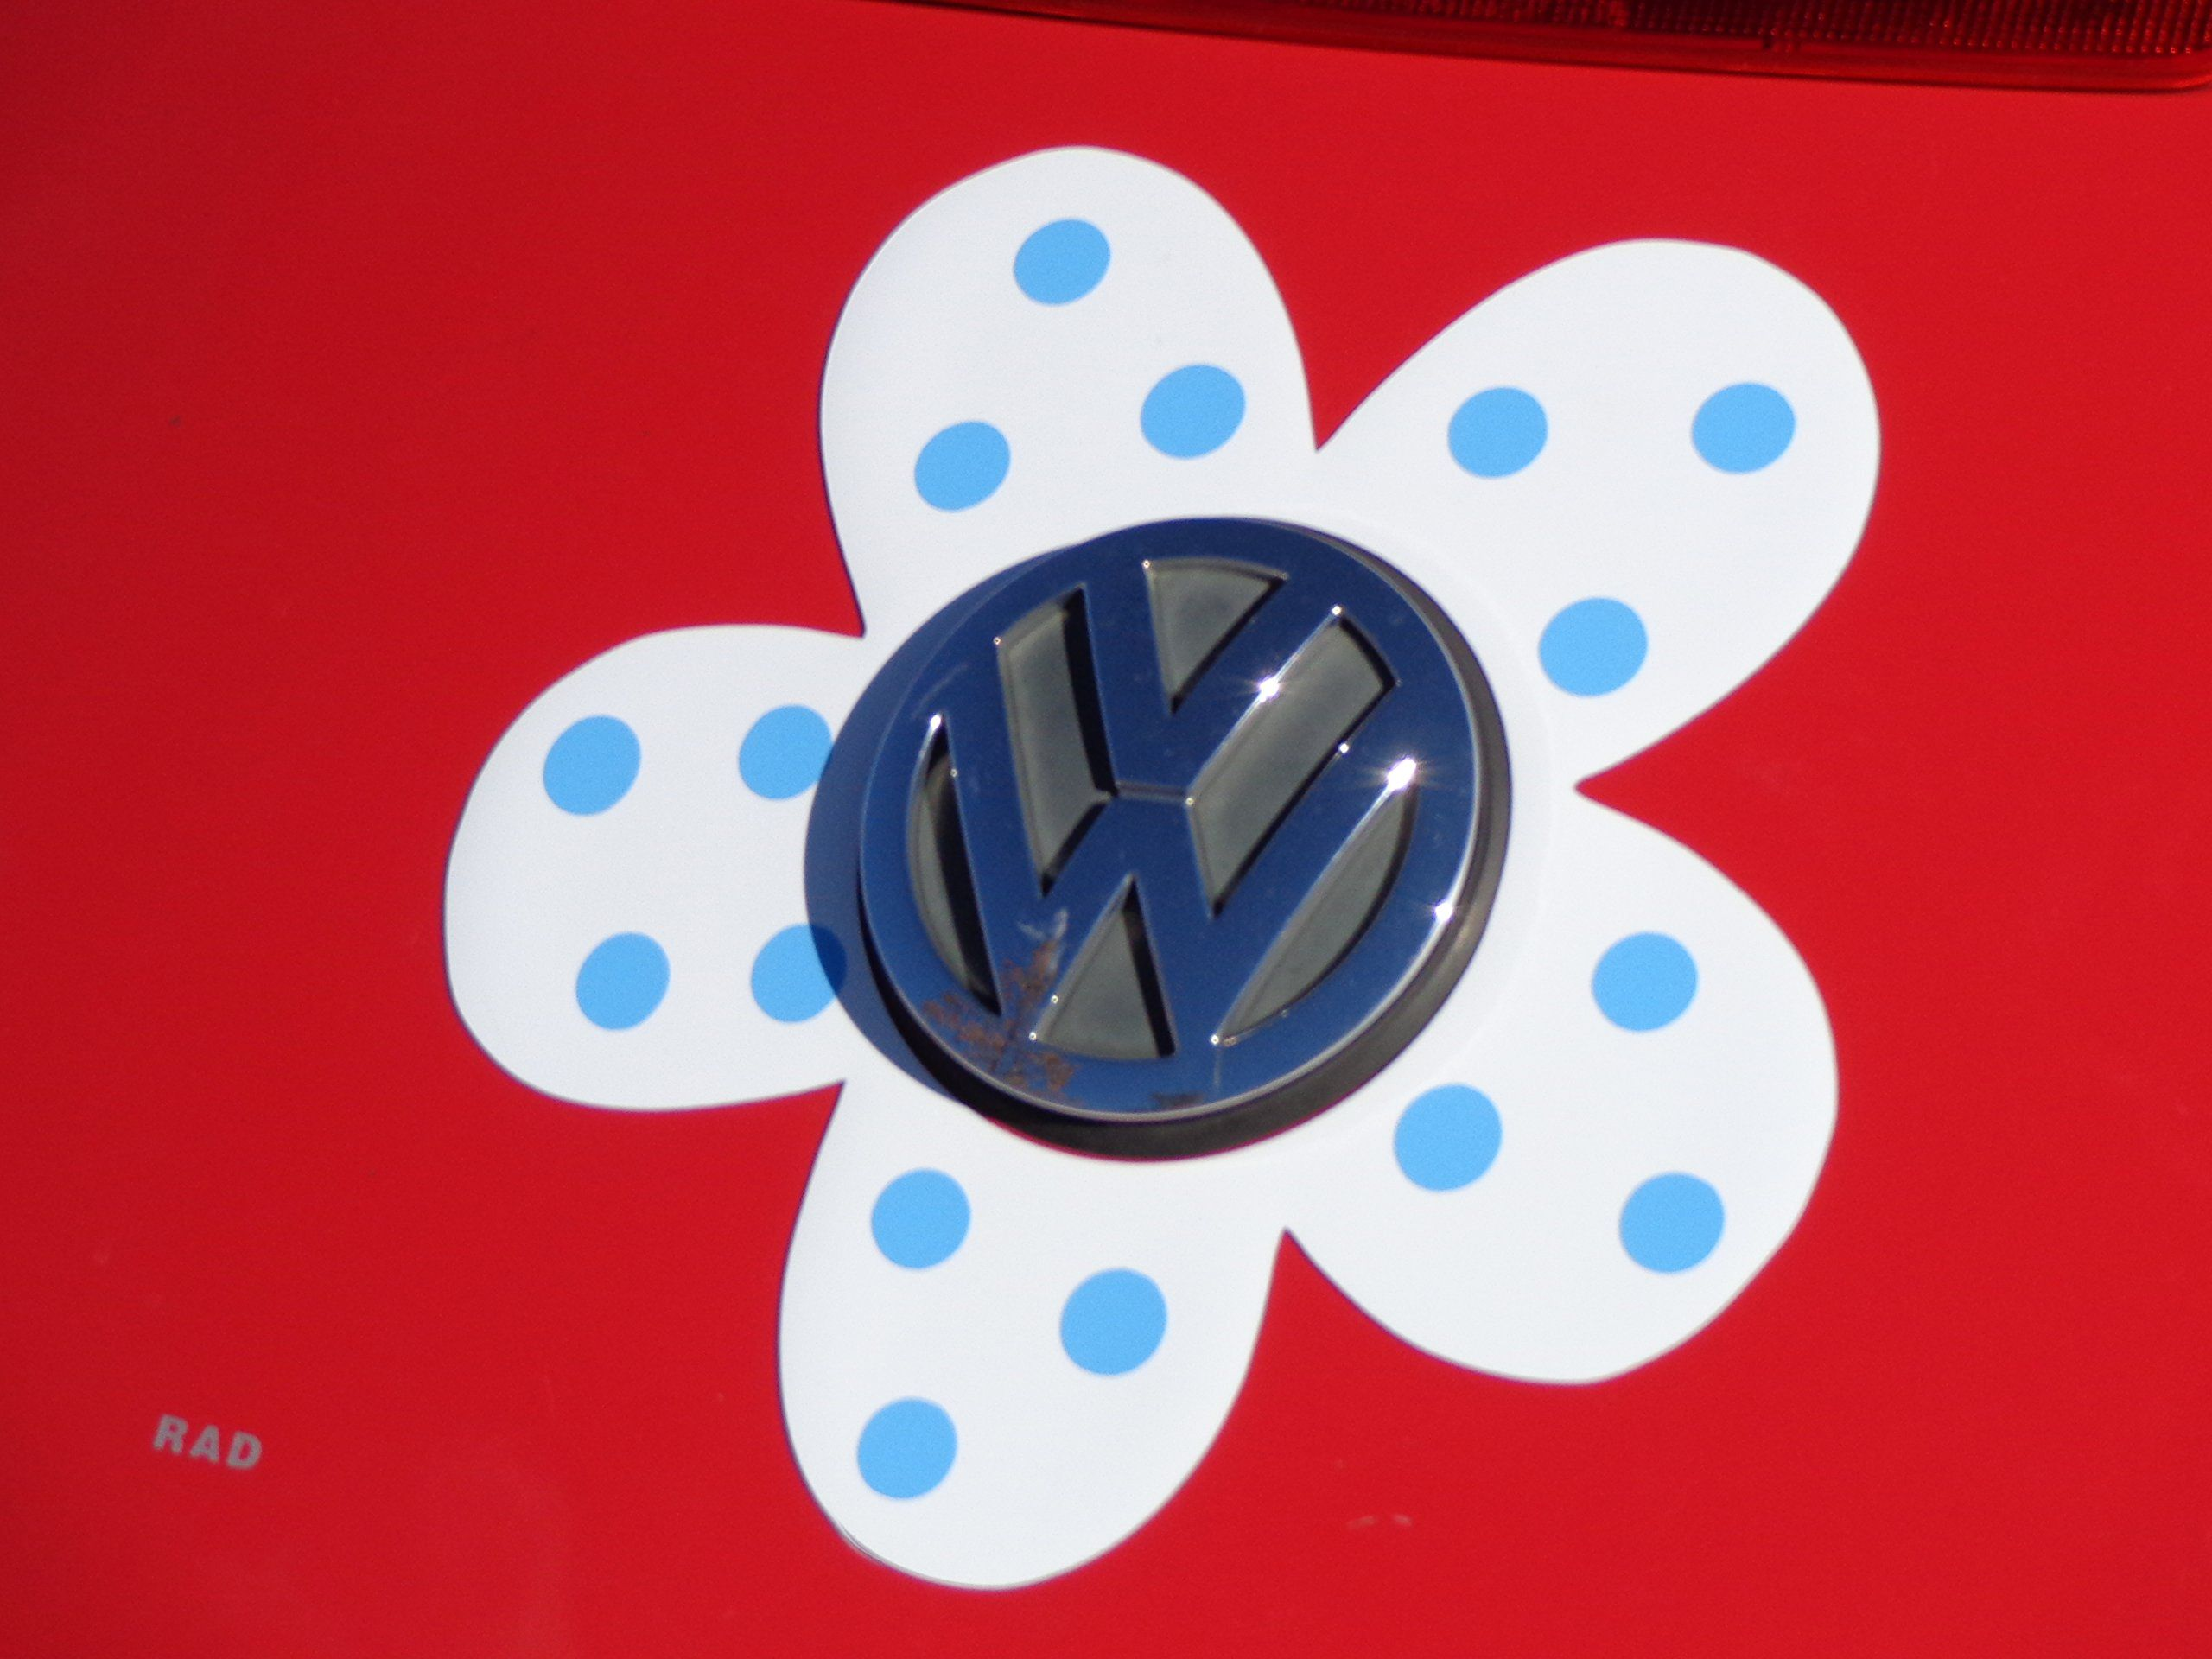 Magnetic VW Beetle Decal Light Blue Polka Dot Daisy Bling My - Magnetic car decals flowers